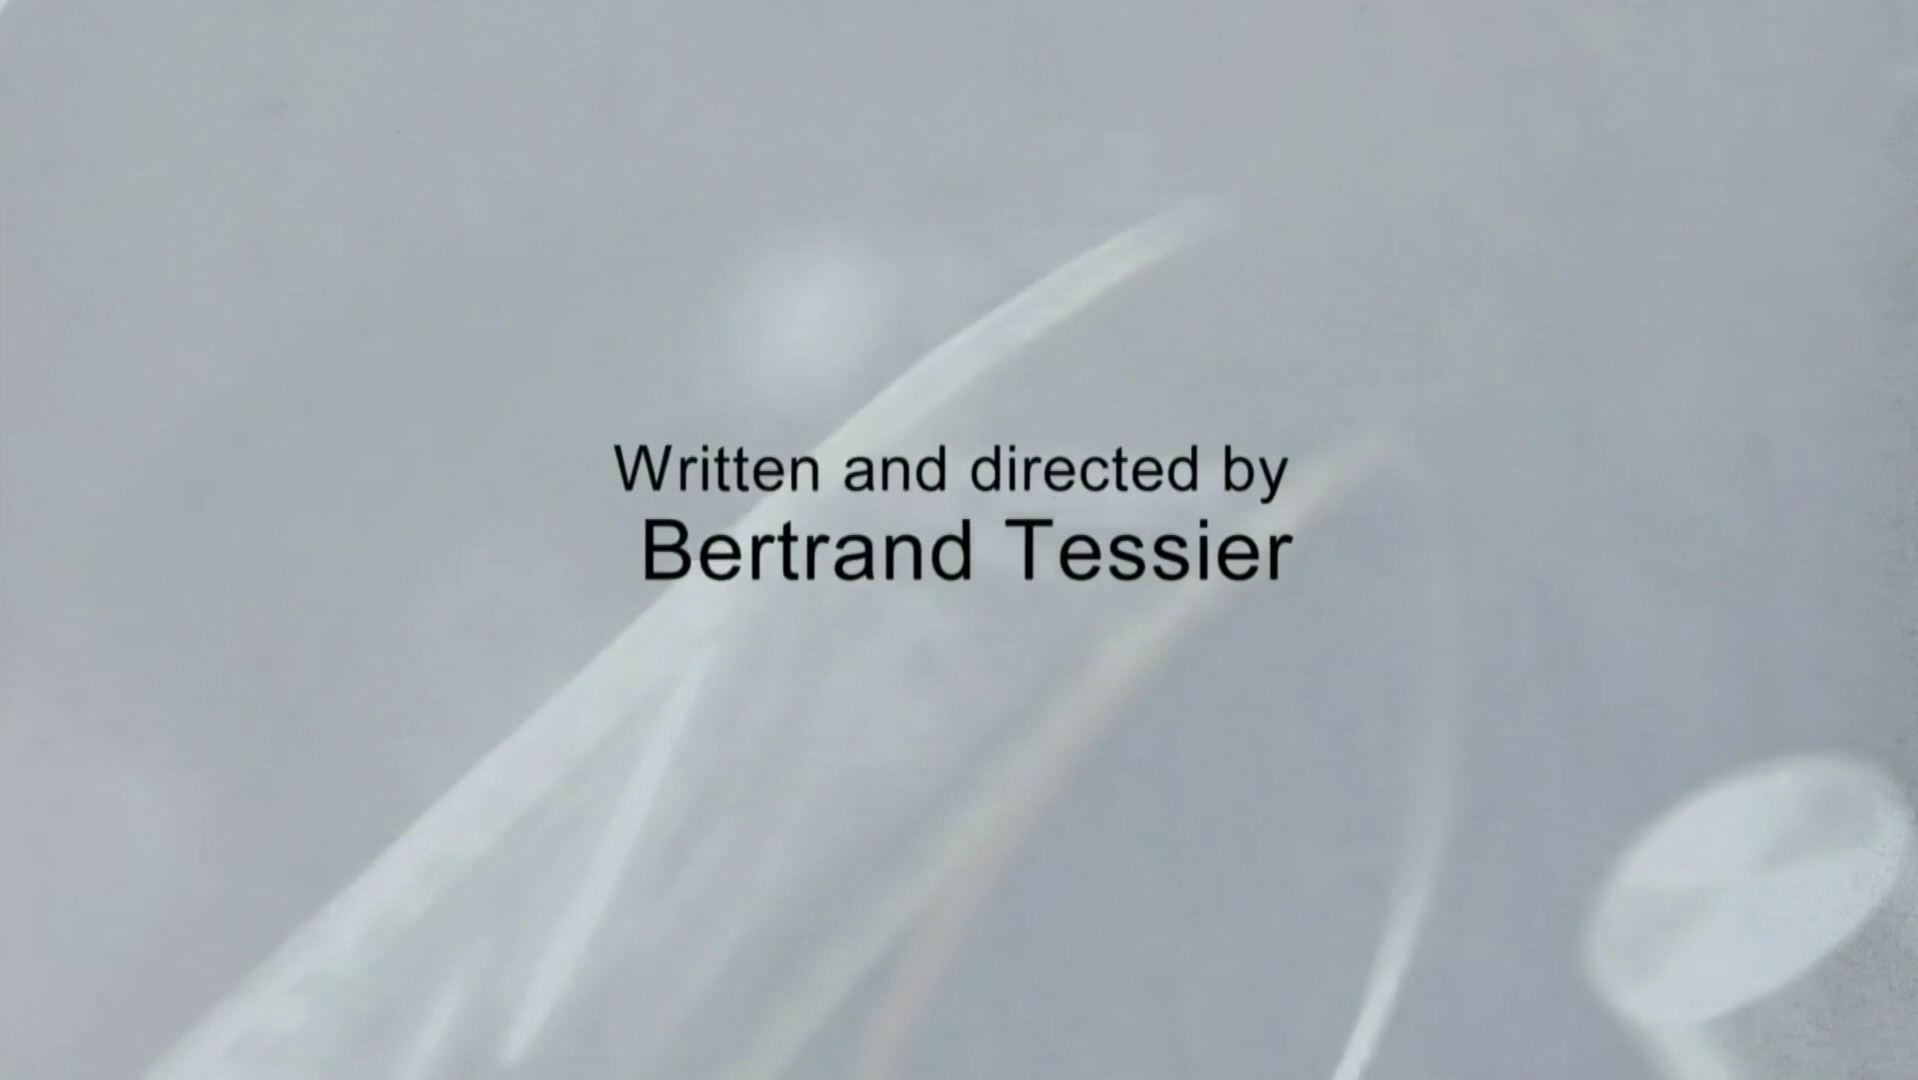 Main title from the 2000 'Elizabeth Taylor and Richard Burton' episode of Hollywood Couples (3). Written and directed by Bertrand Tessier